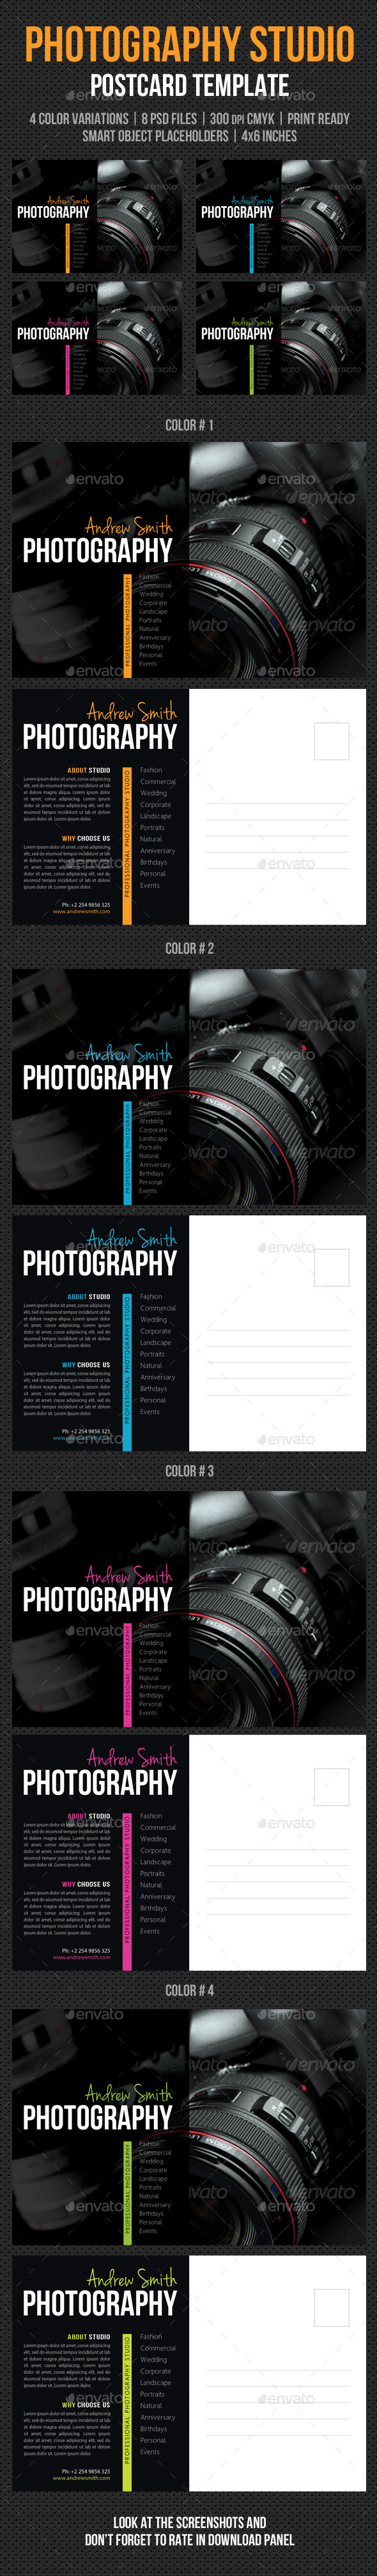 Photography Studio Postcard Template V03 - Cards & Invites Print Templates